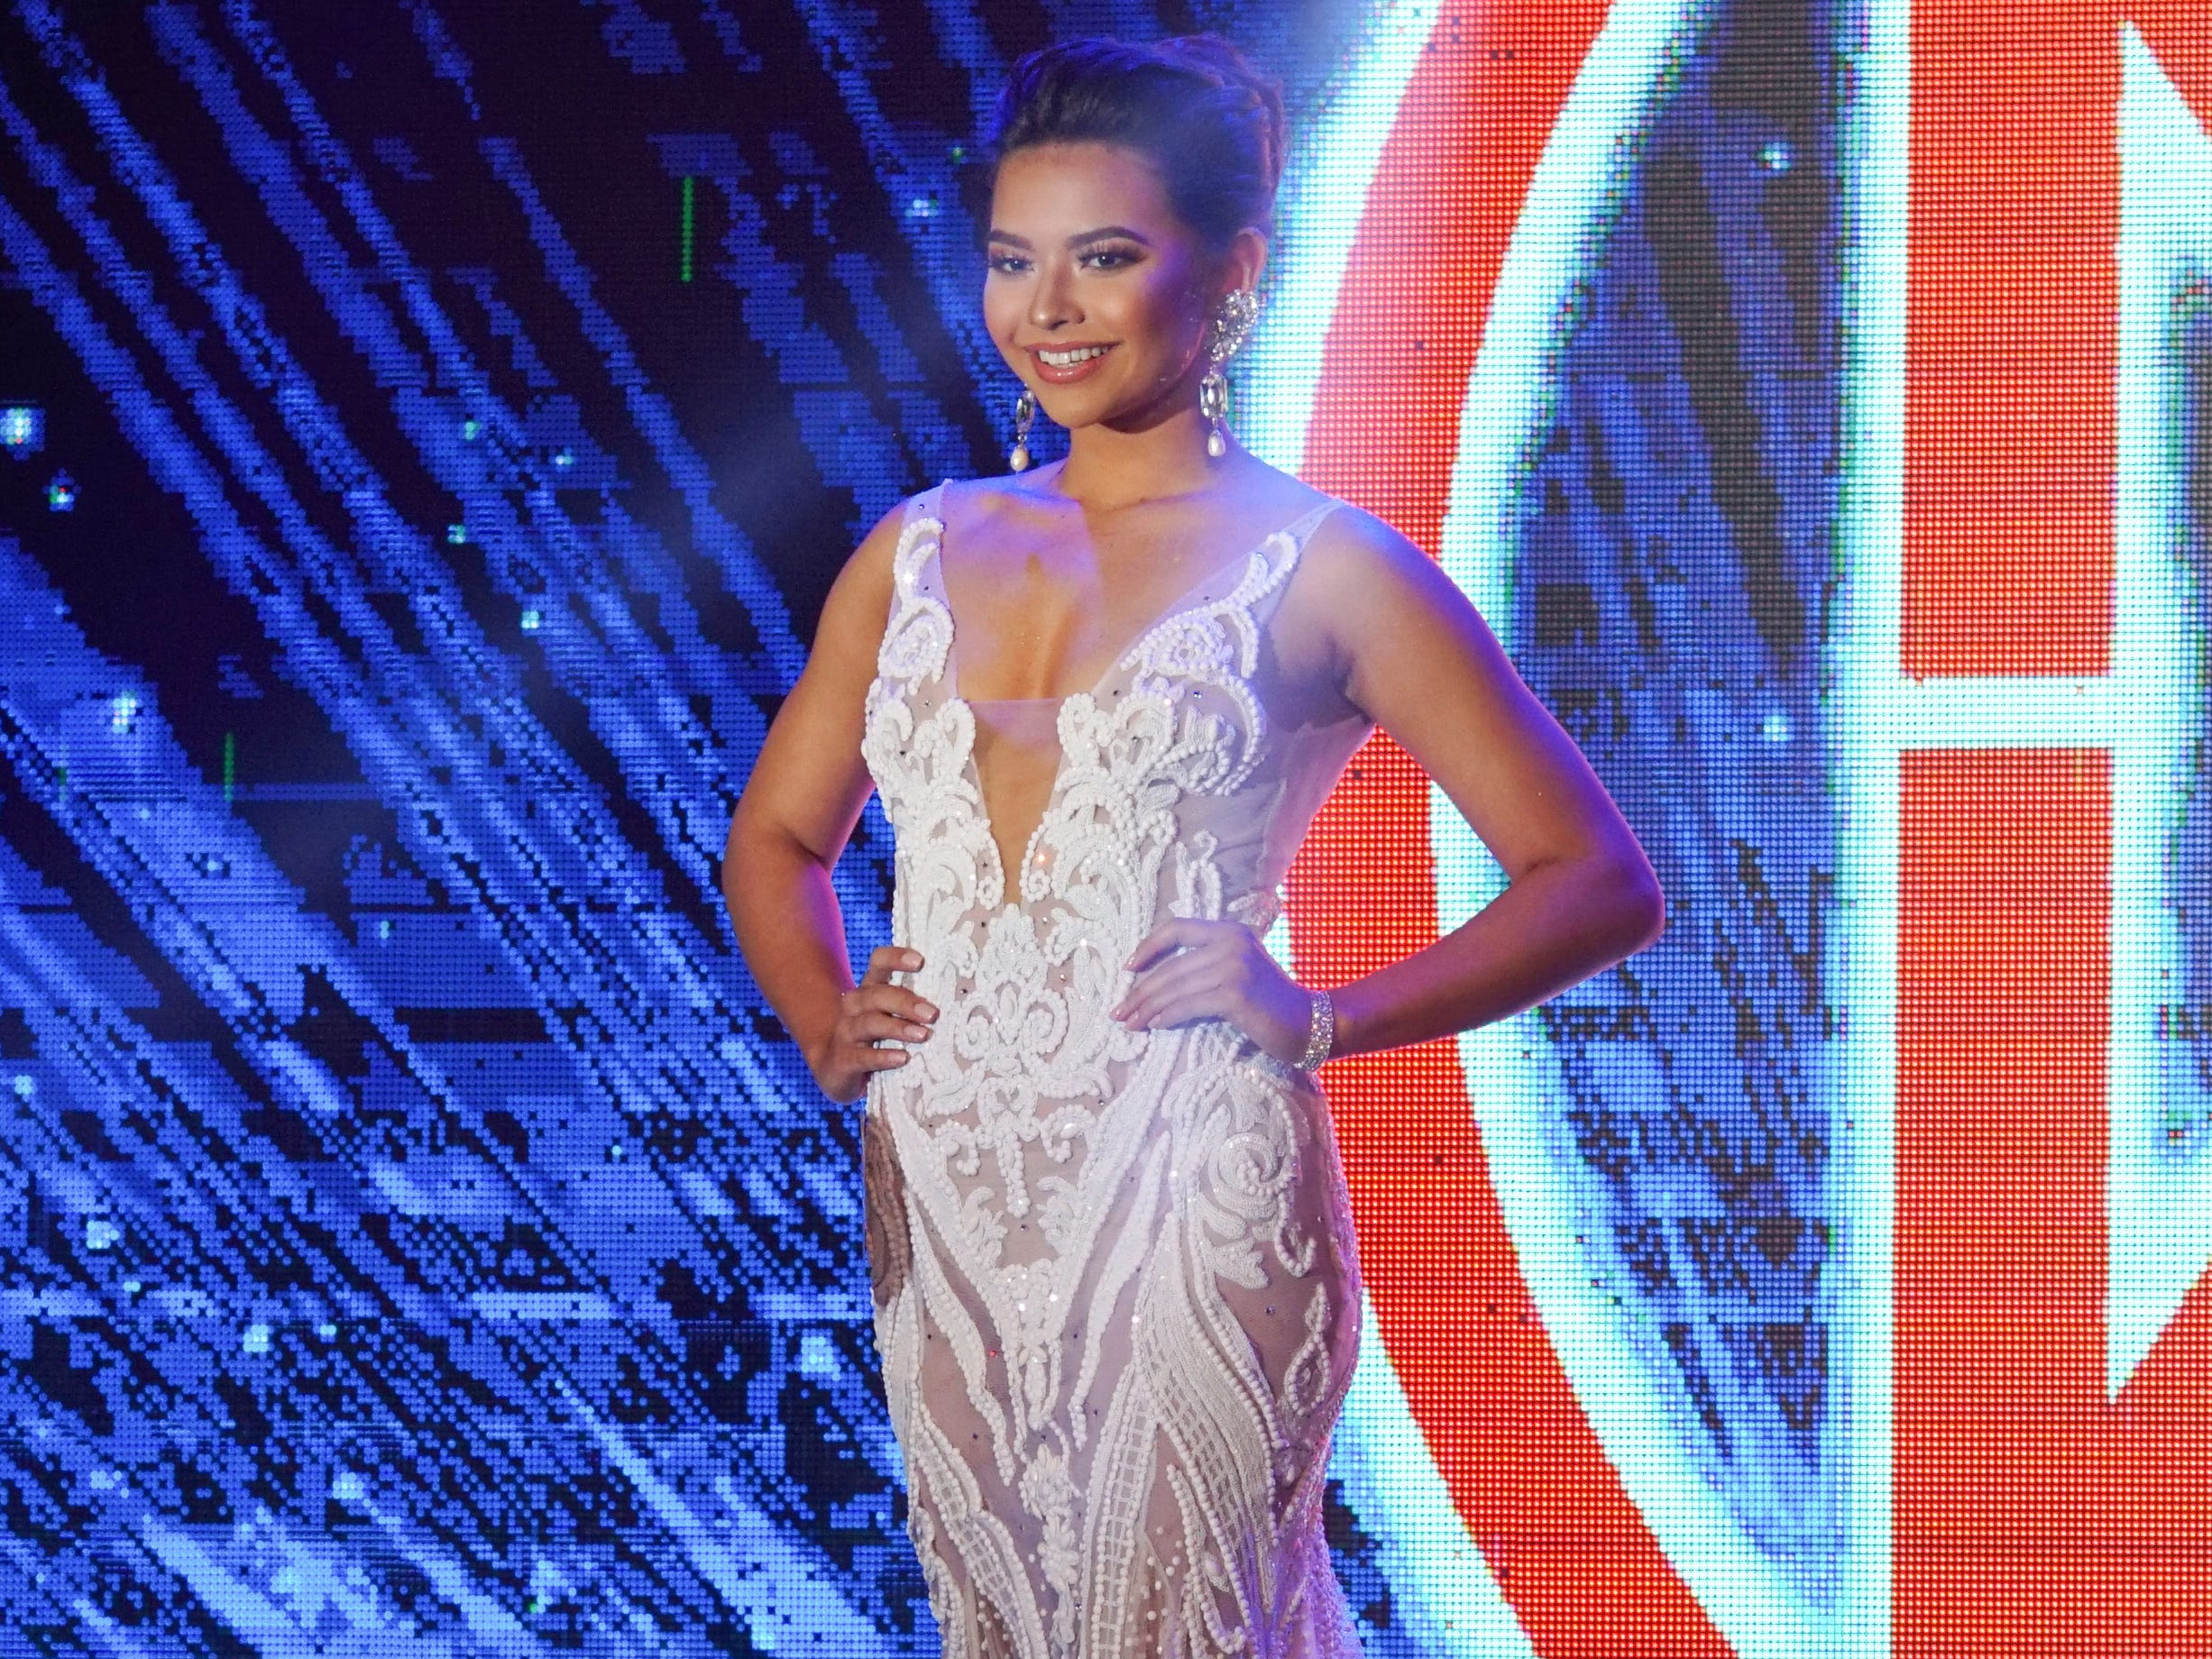 Contestant #2 Gianna Camacho Sgambelluri, 18, from Barrigada, wearing  her evening gown during the Miss World Guam Pageant which was held at Sheraton Laguna Guam Resort.